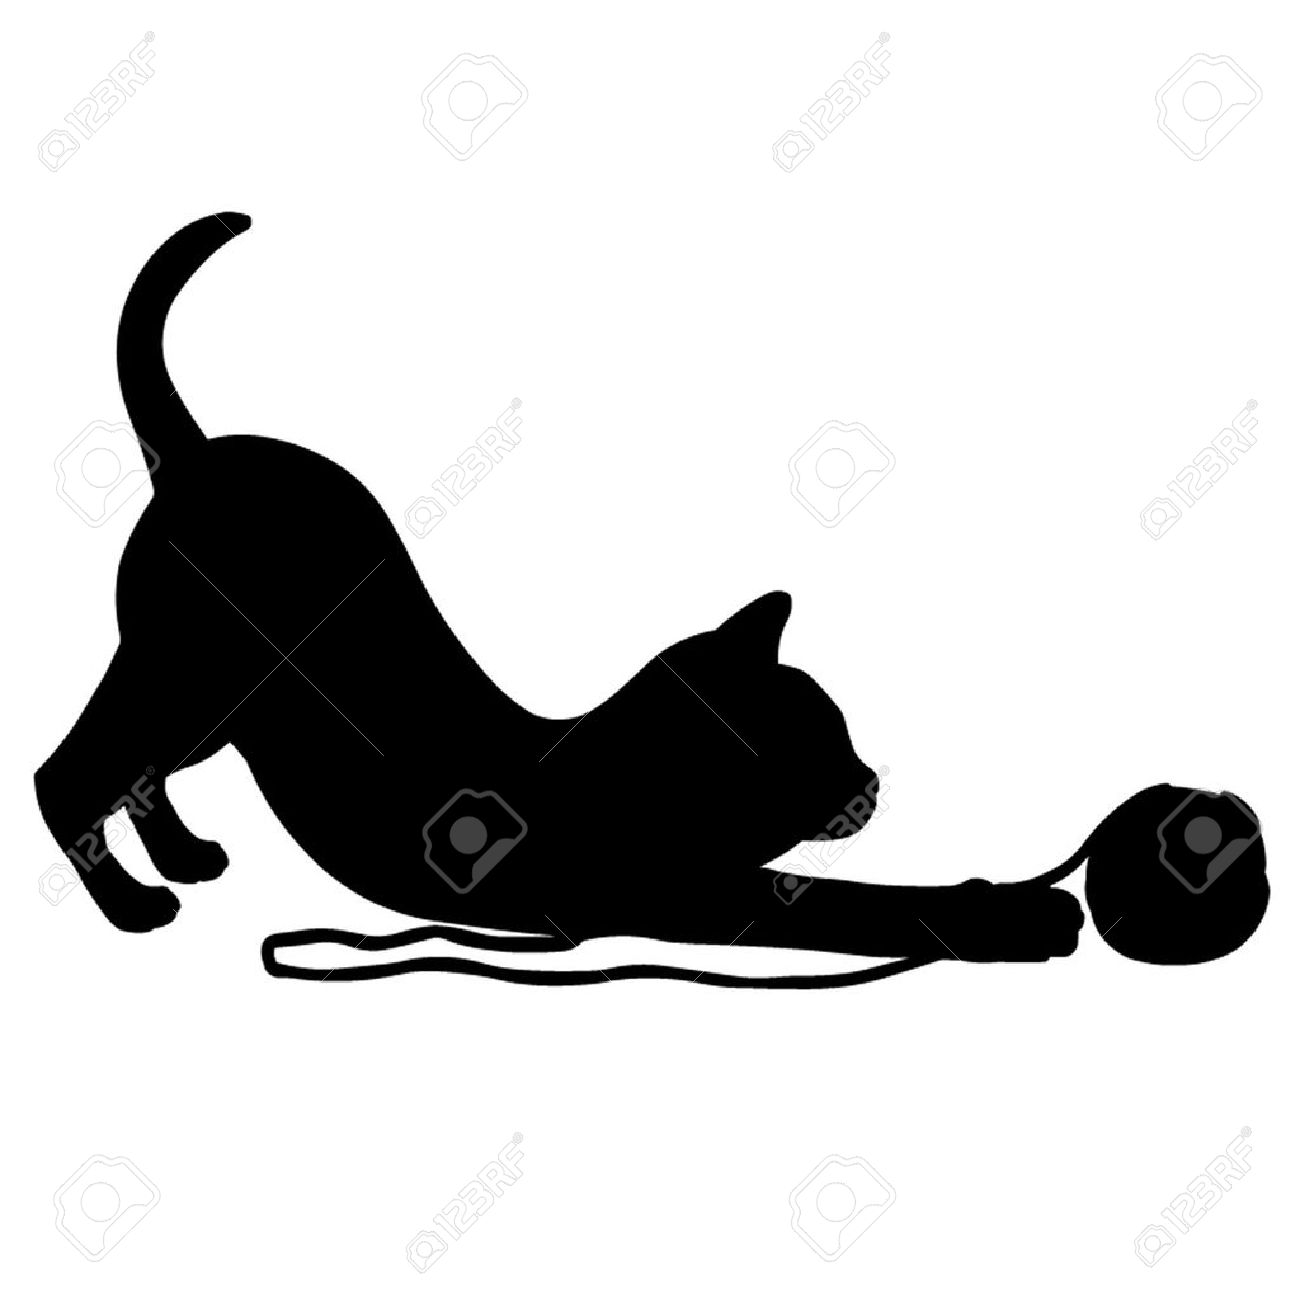 KITTENS clipart silhouette  of a with playing